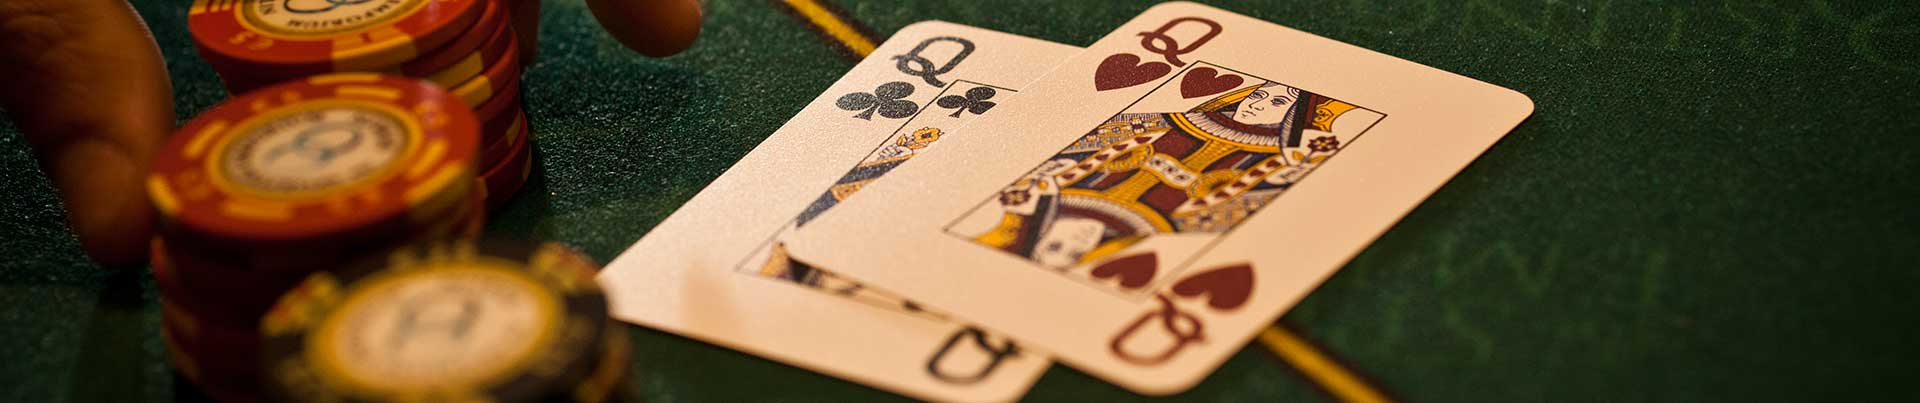 Hands reaching for Poker chips on green background